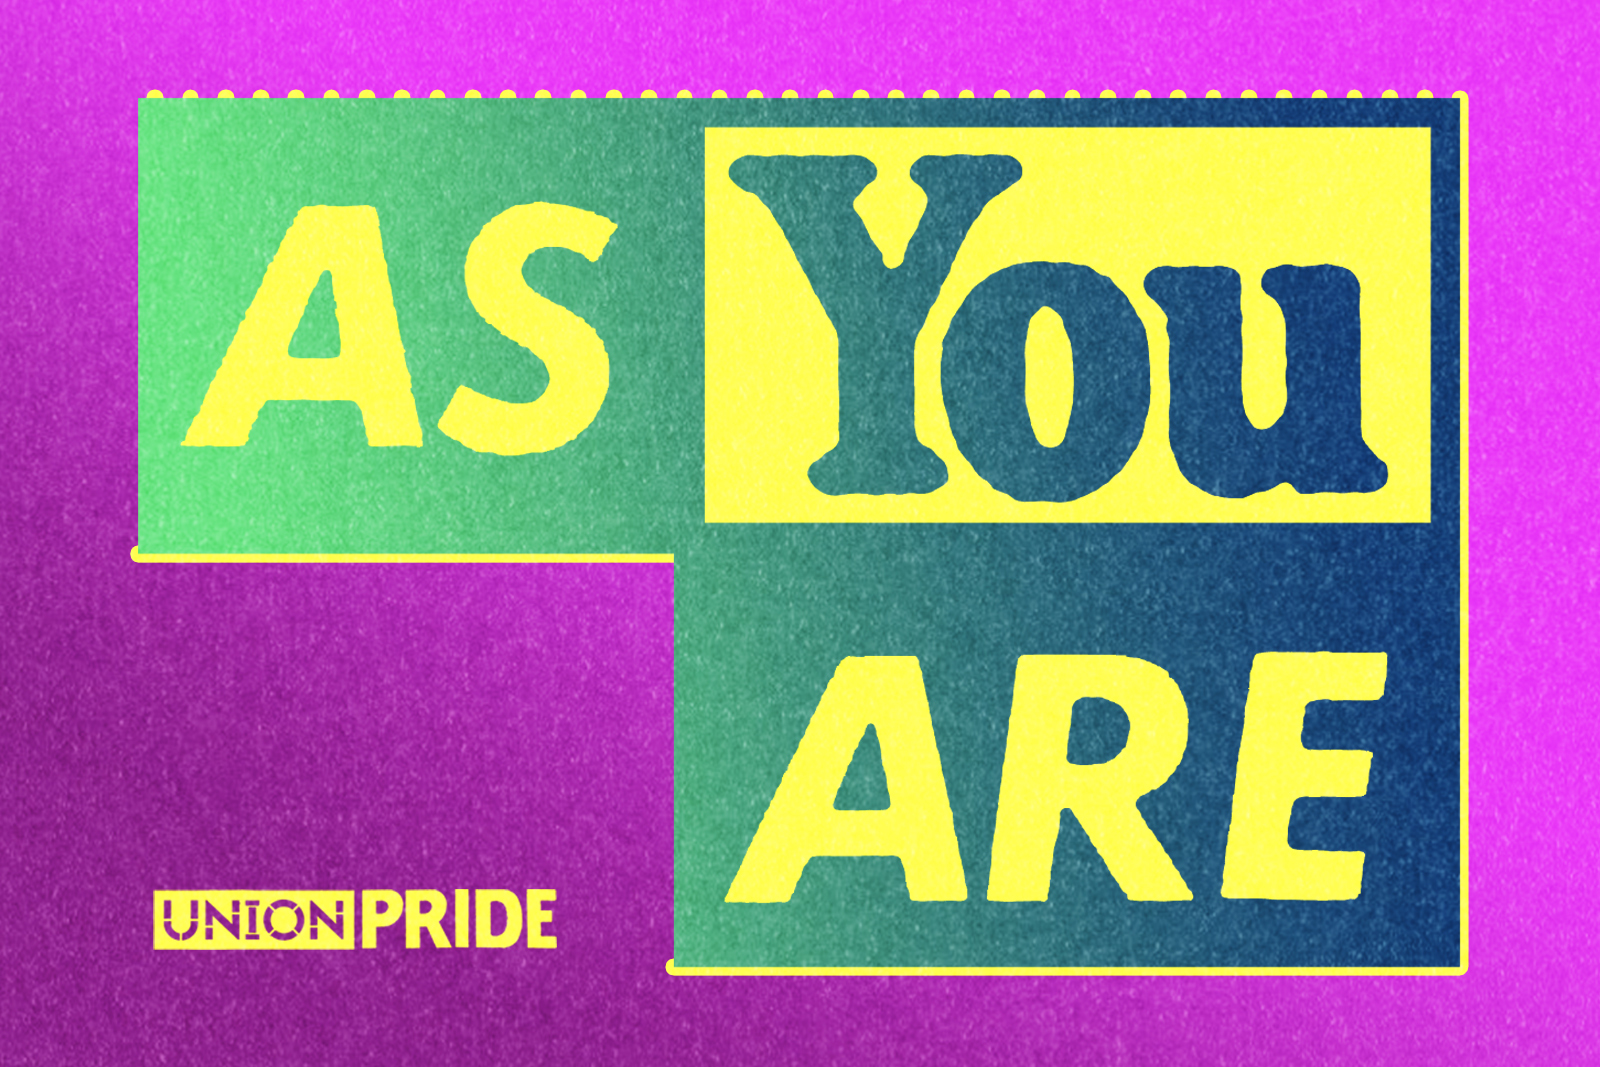 As You Are Logo in yellow and blue against a purple background